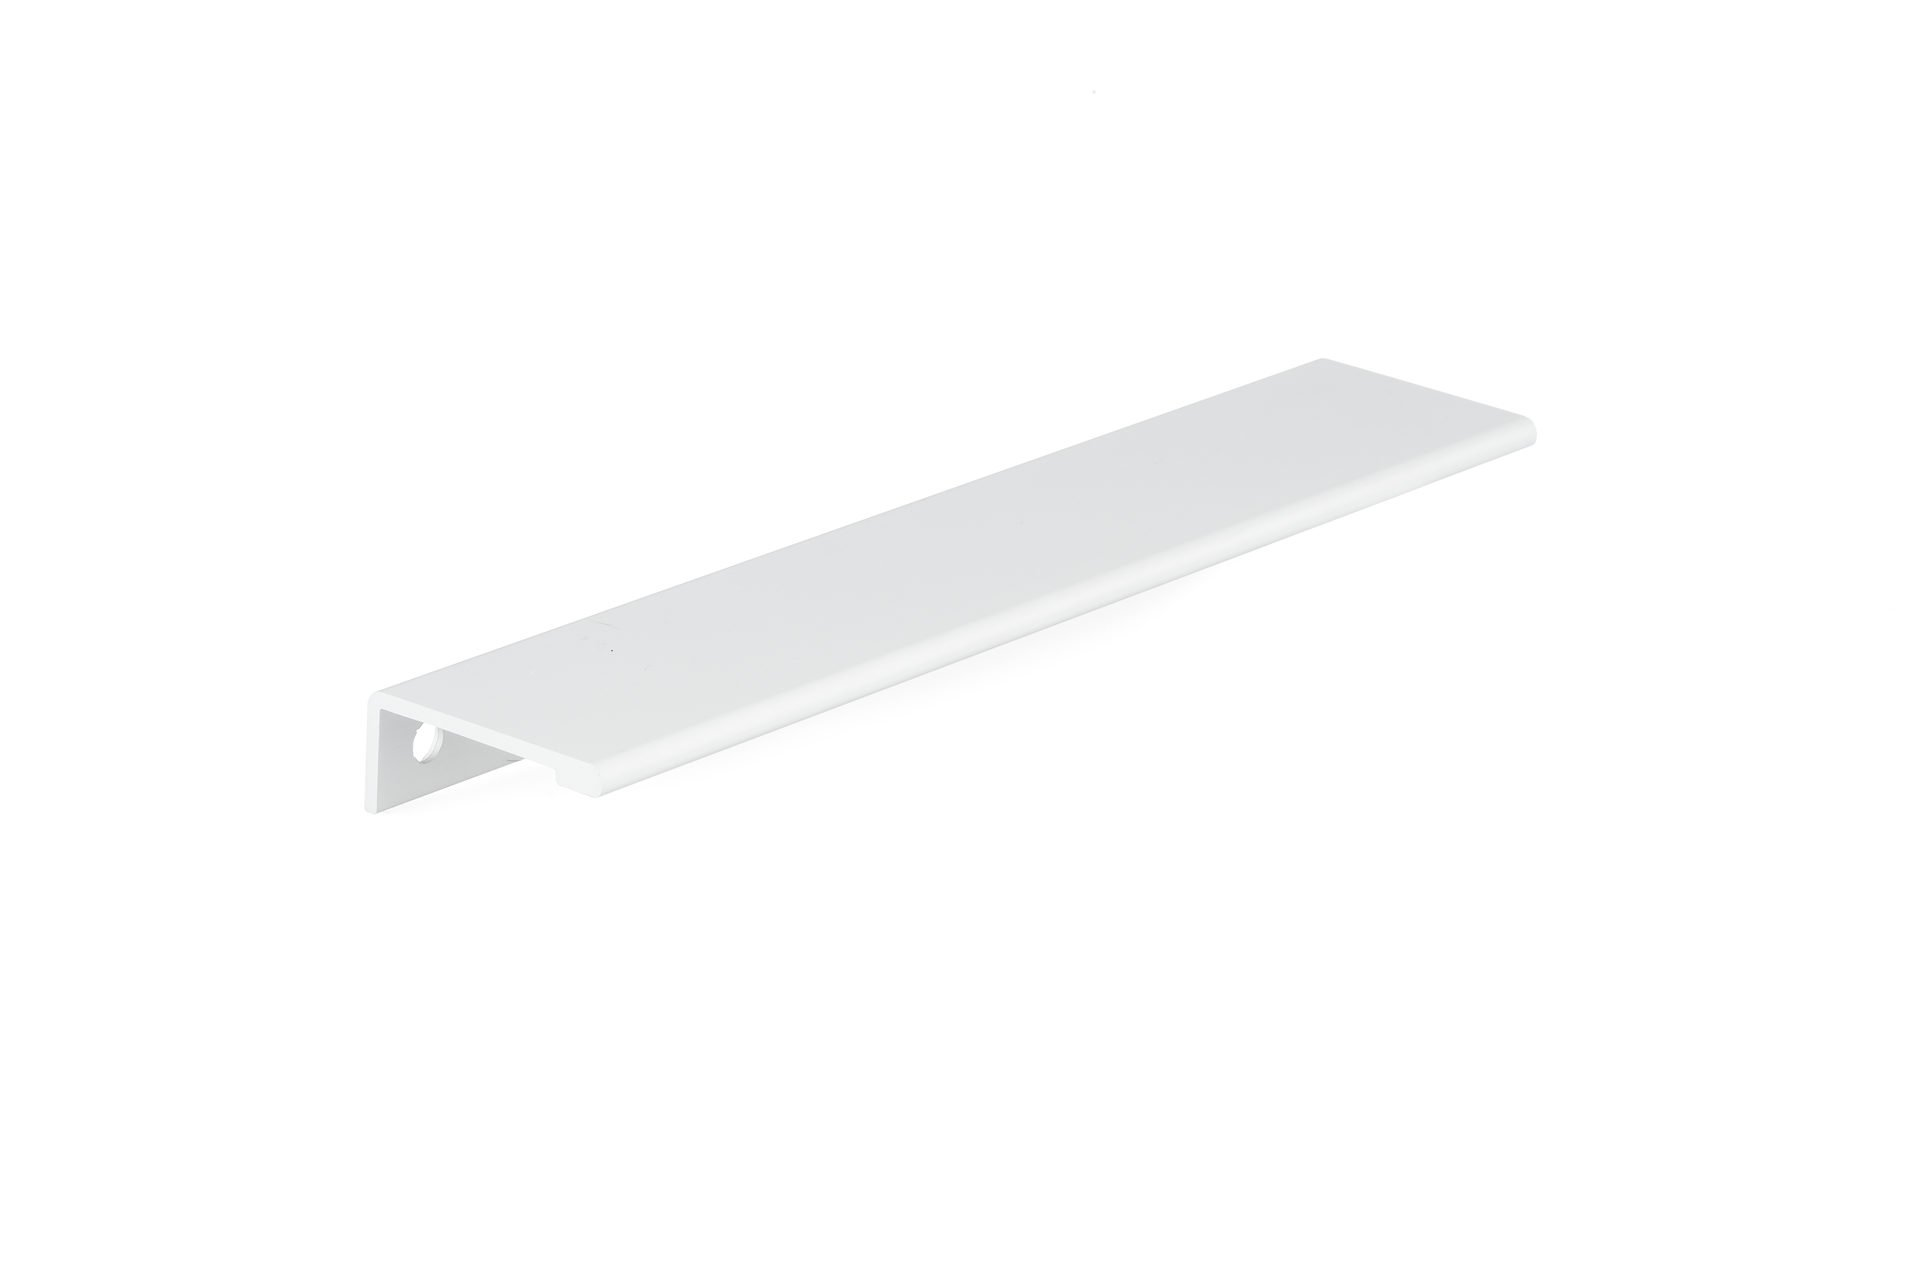 Richelieu Hardware - BP989819230 - Contemporary Aluminum Edge Pull - 9898-7 9/16 in (192 mm) - White Finish